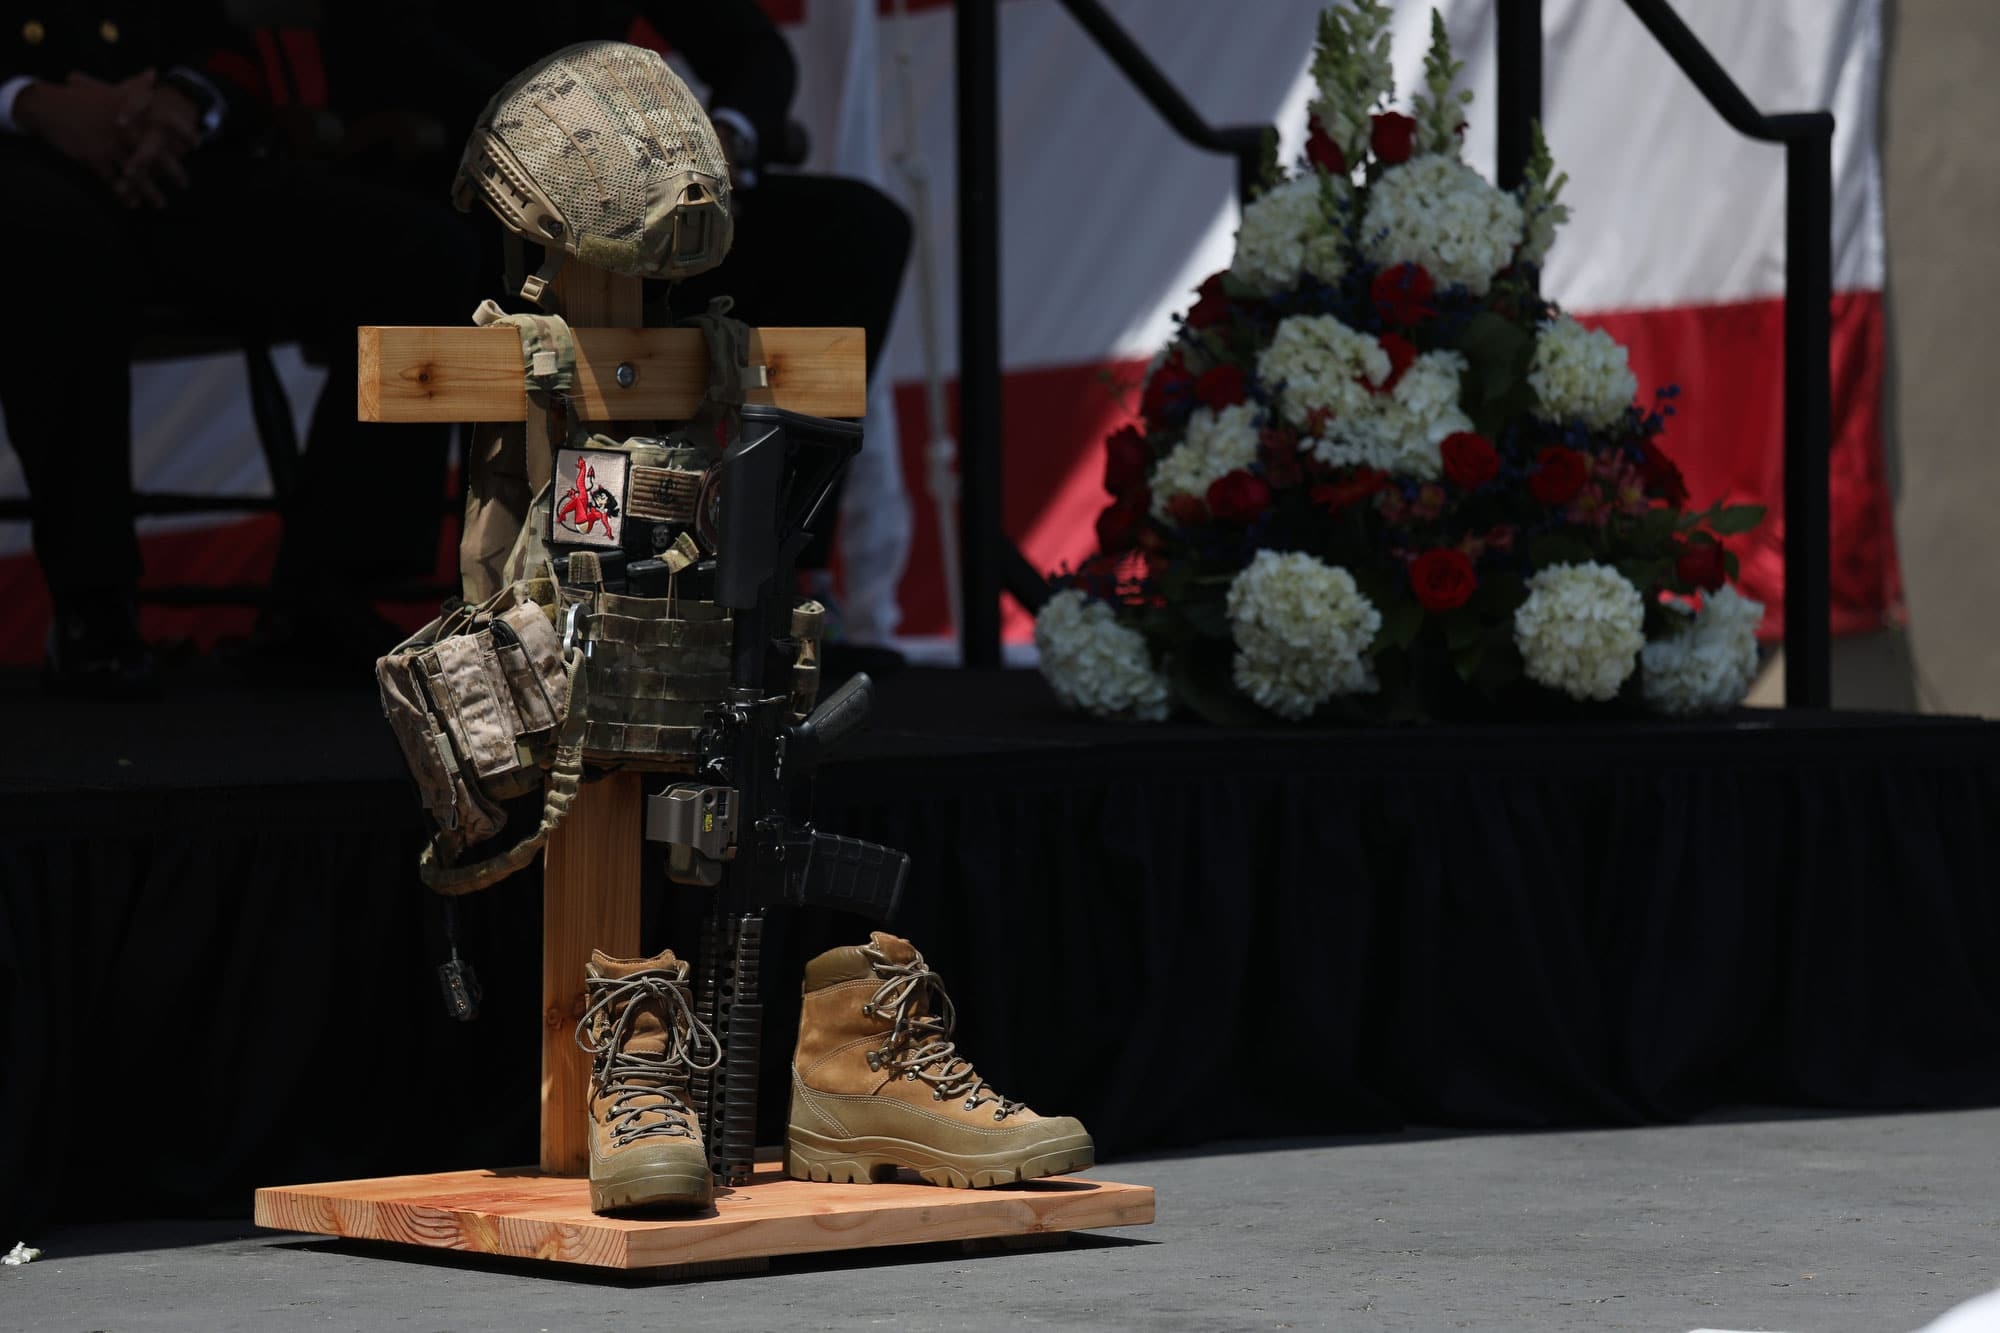 CORONADO, Calif. (June 2, 2017) A battlefield cross is displayed in honor of Special Operator 1st Class (SEAL) Remington Peters during a memorial ceremony at Naval Amphibious Base, Coronado. Peters, from Colorado, died from injuries sustained during an airborne demonstration at New York Fleet Week on May 28, 2017.